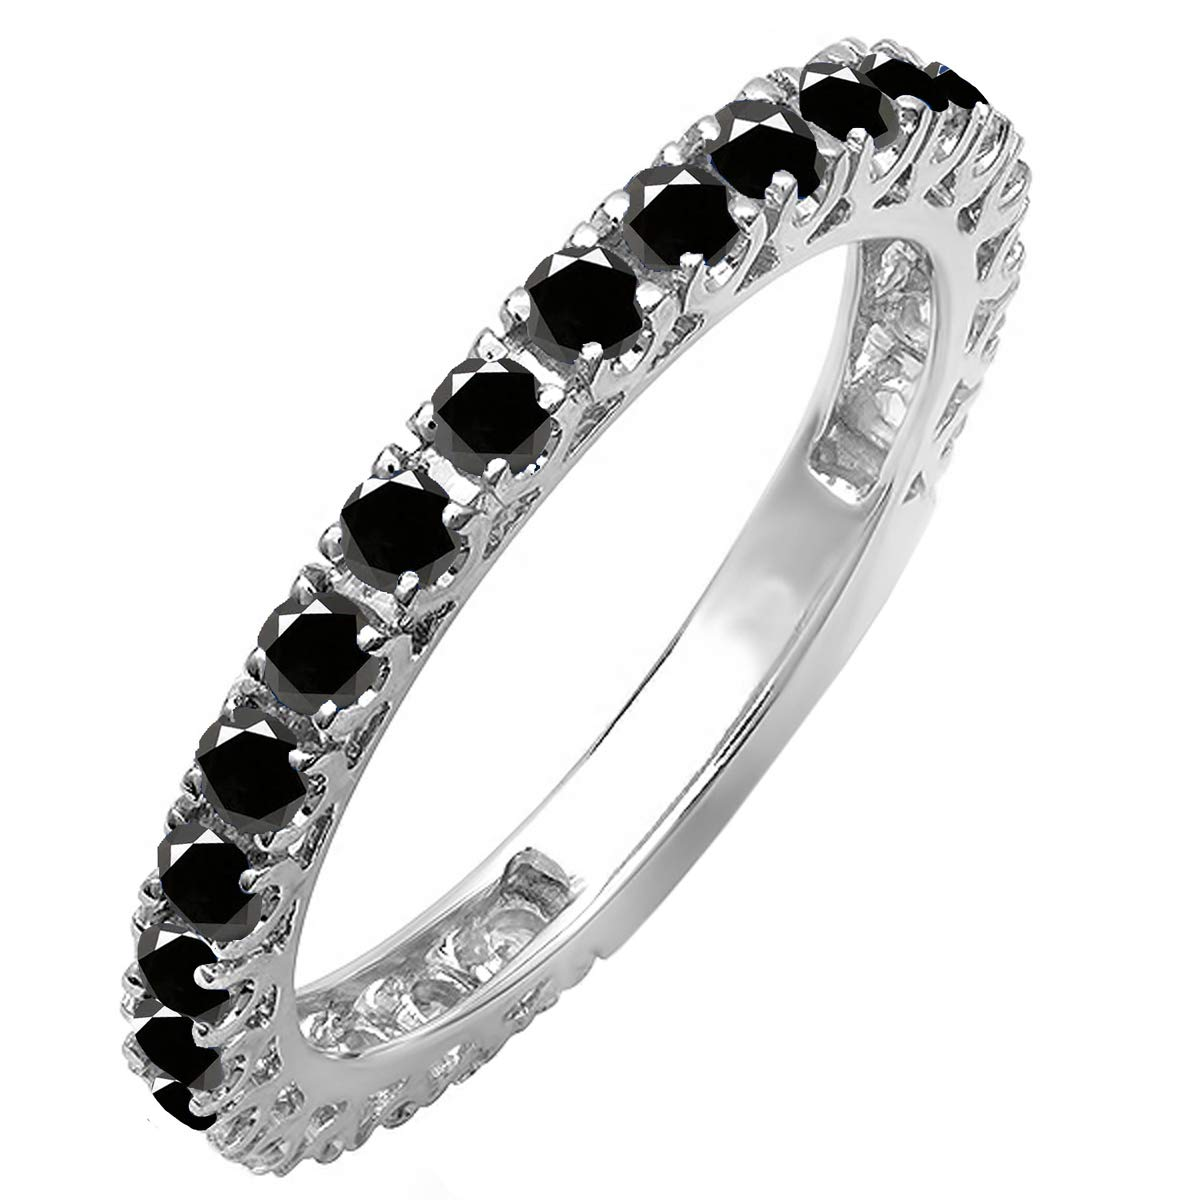 Dazzlingrock Collection 0.90 Carat (ctw) 14K Round Black Diamond Eternity Sizeable Wedding Band, White Gold, Size 8.5 by Dazzlingrock Collection